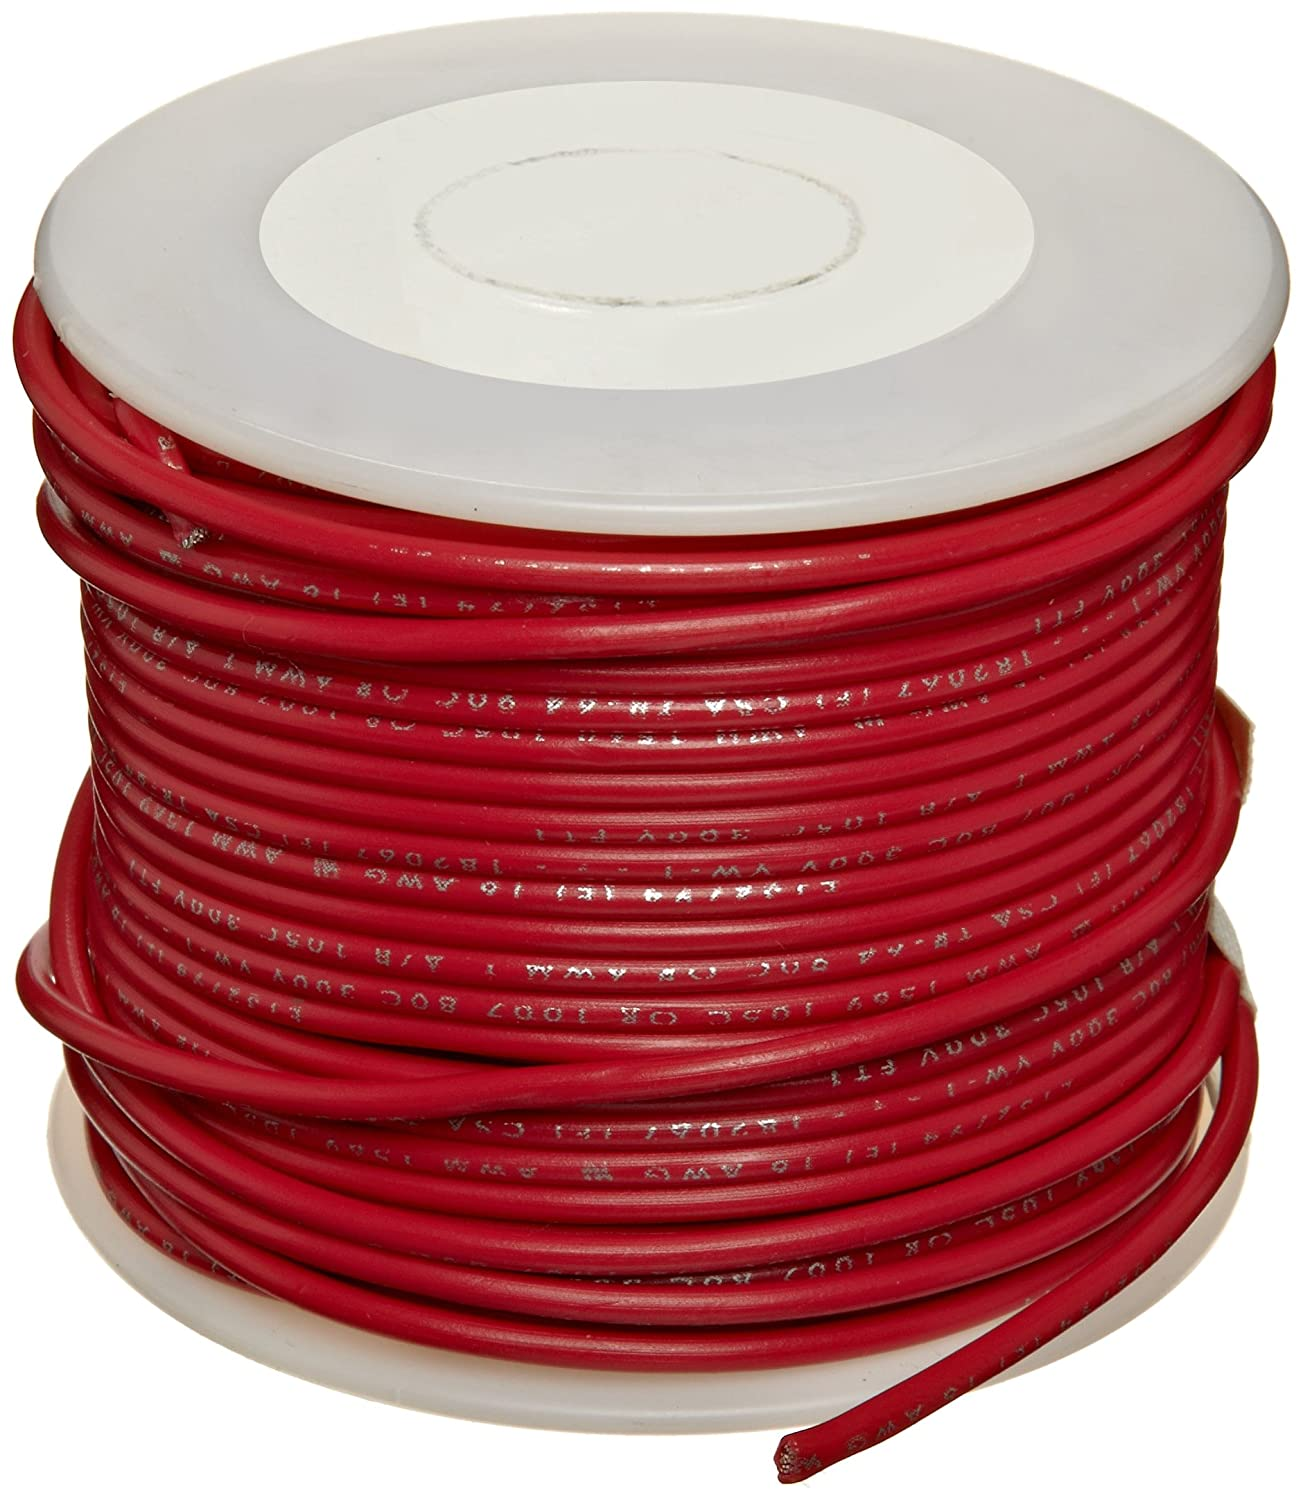 UL1007 Commercial Copper Wire 16 AWG 1000 Length Bright Small Parts Pack of 1 Red Pack of 1 0.050 Diameter 1000/' Length 0.050 Diameter